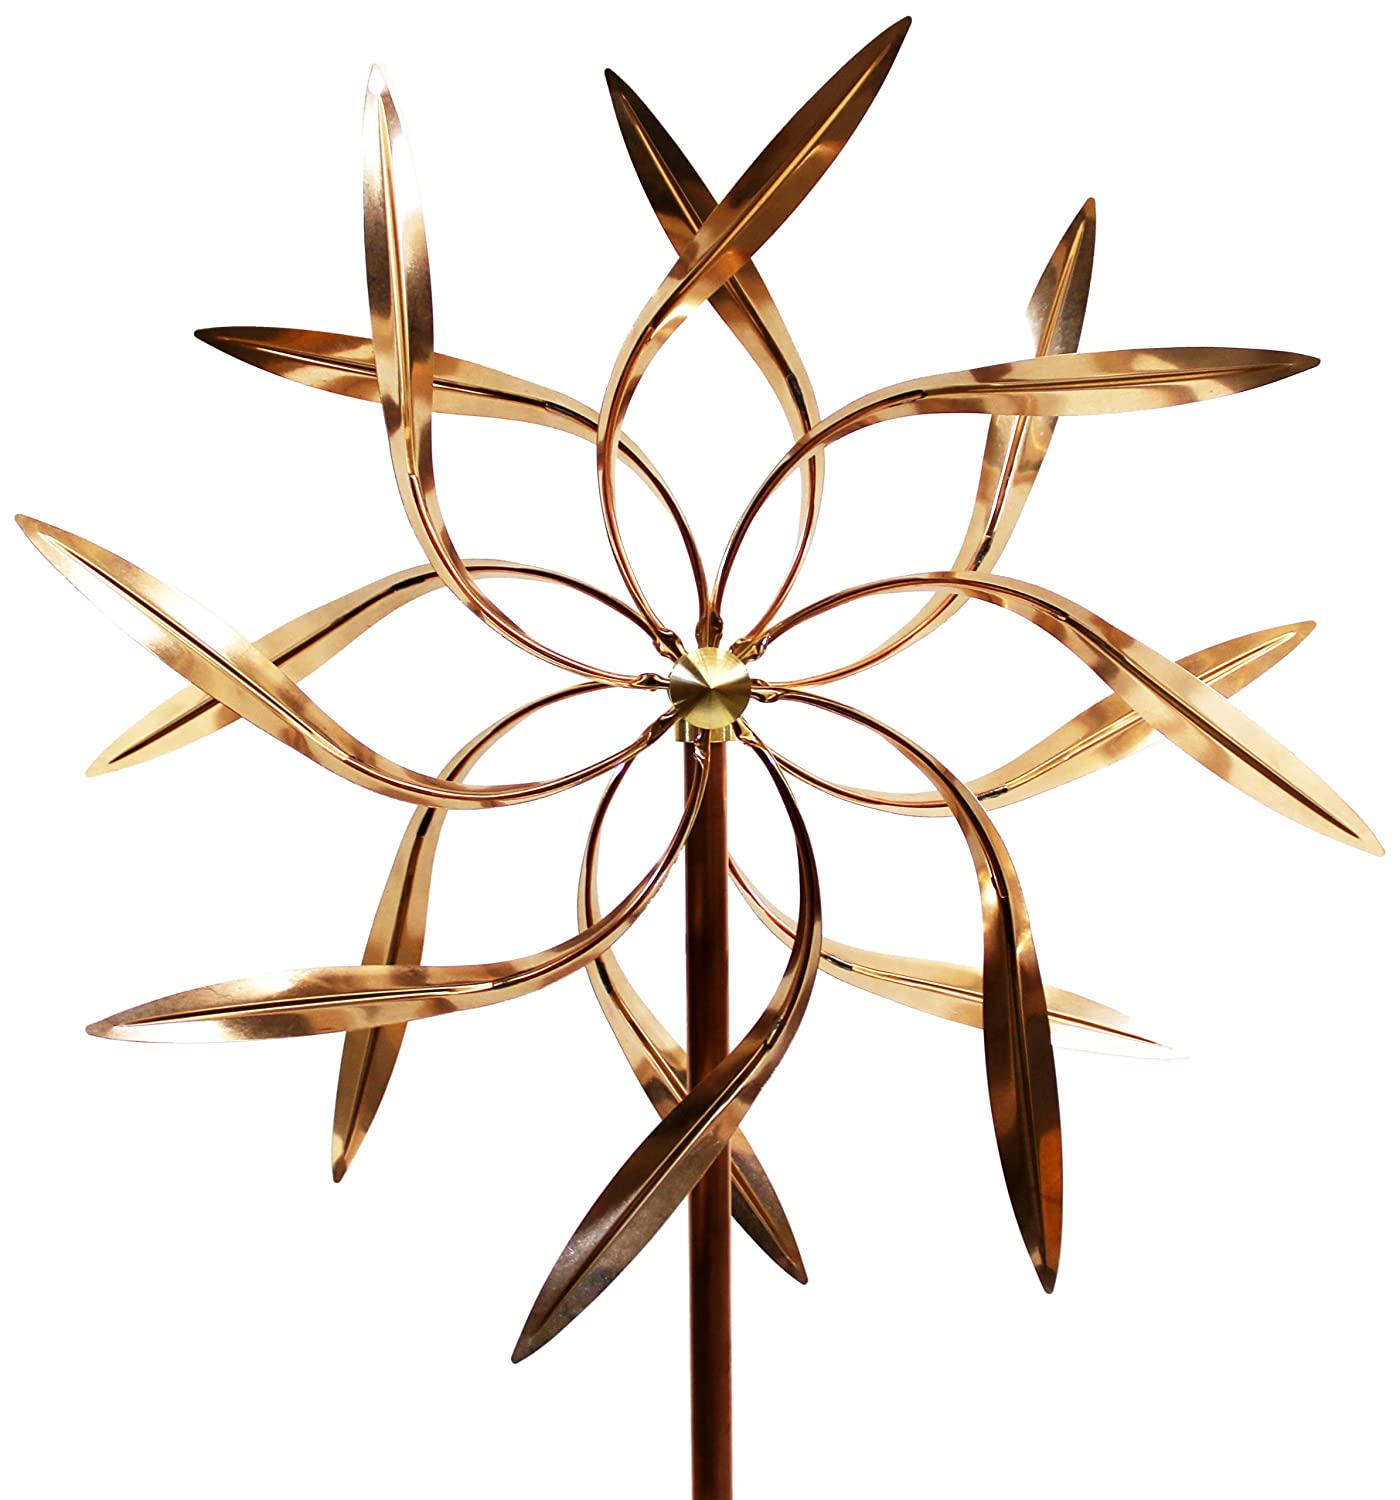 Kinetic Copper Wind Sculpture, Dual Spinner Dancing Willow Leaves